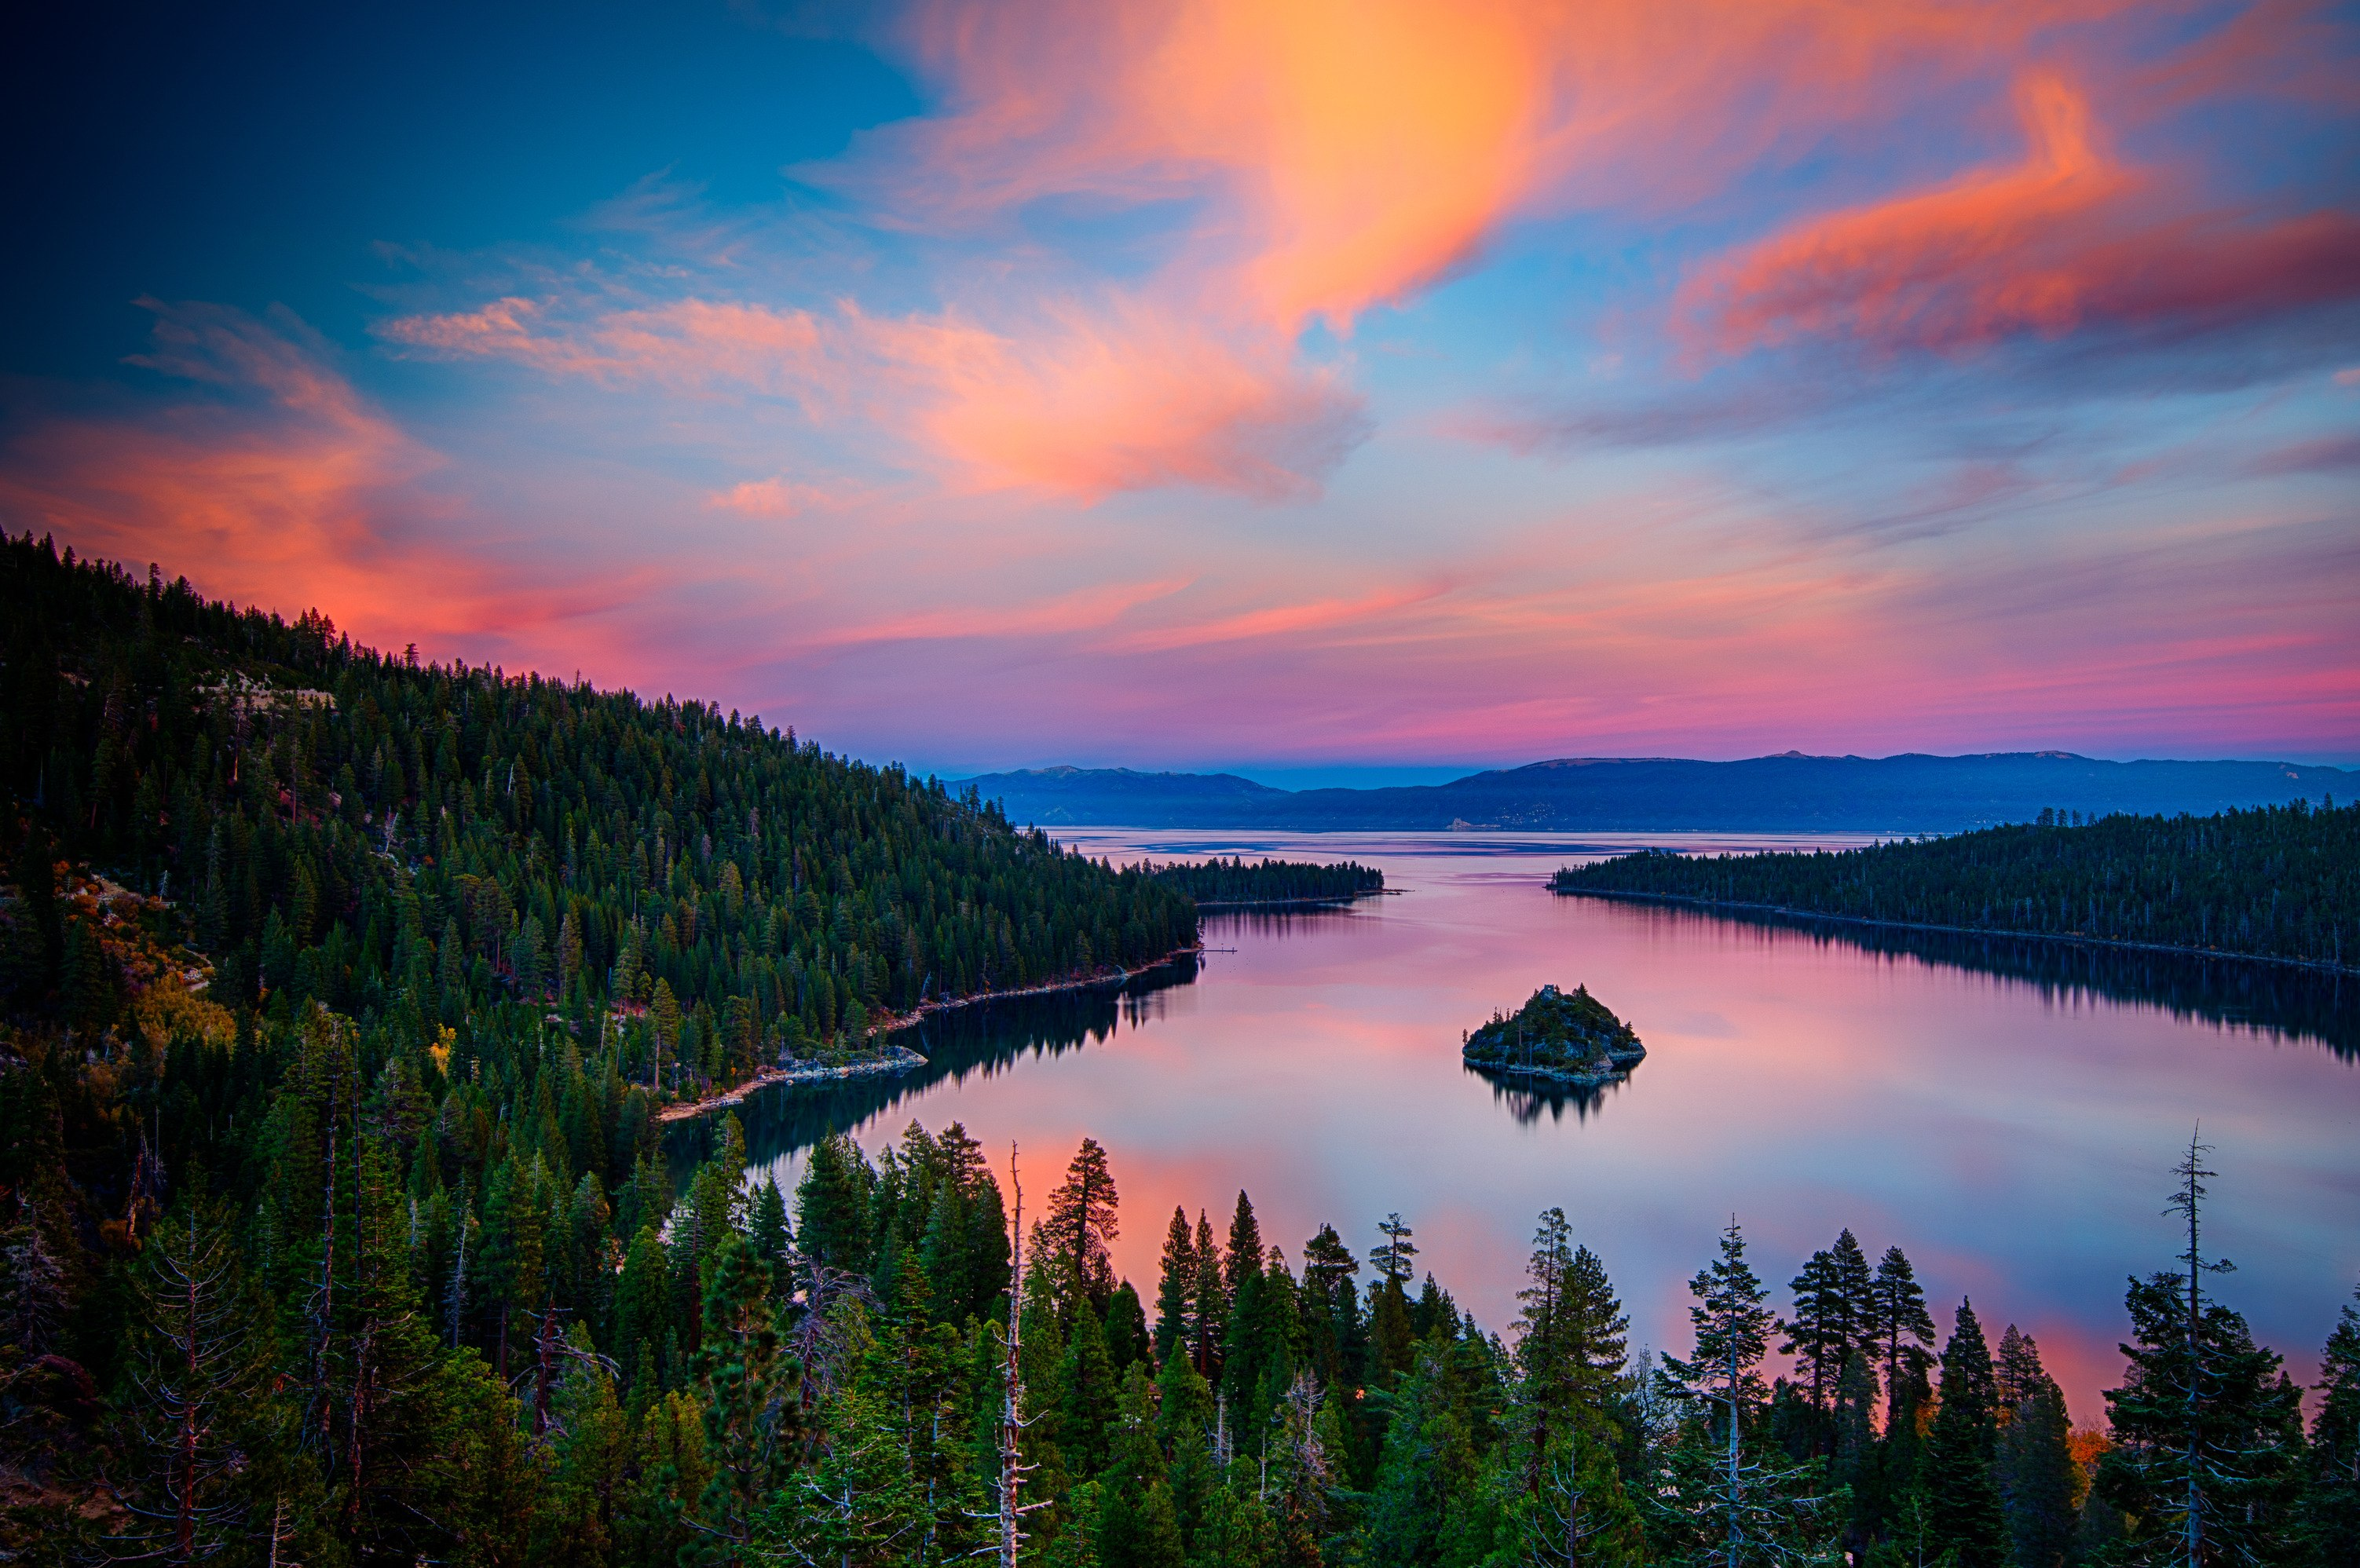 [29+] Lake Tahoe HD Wallpapers On WallpaperSafari